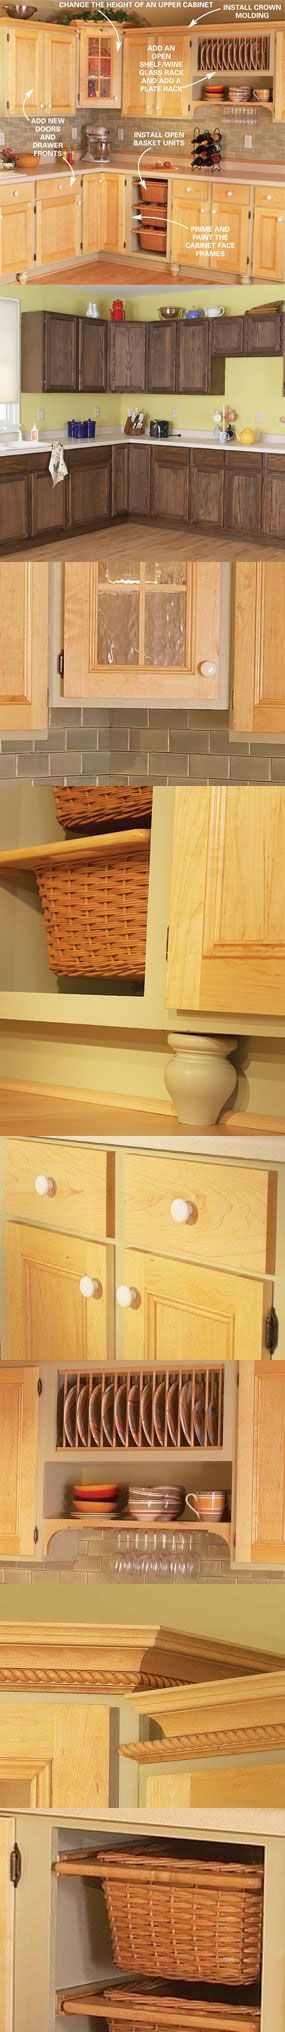 kitchen cabinet shelf paper 38 best images about contact paper countertops designs on 5754